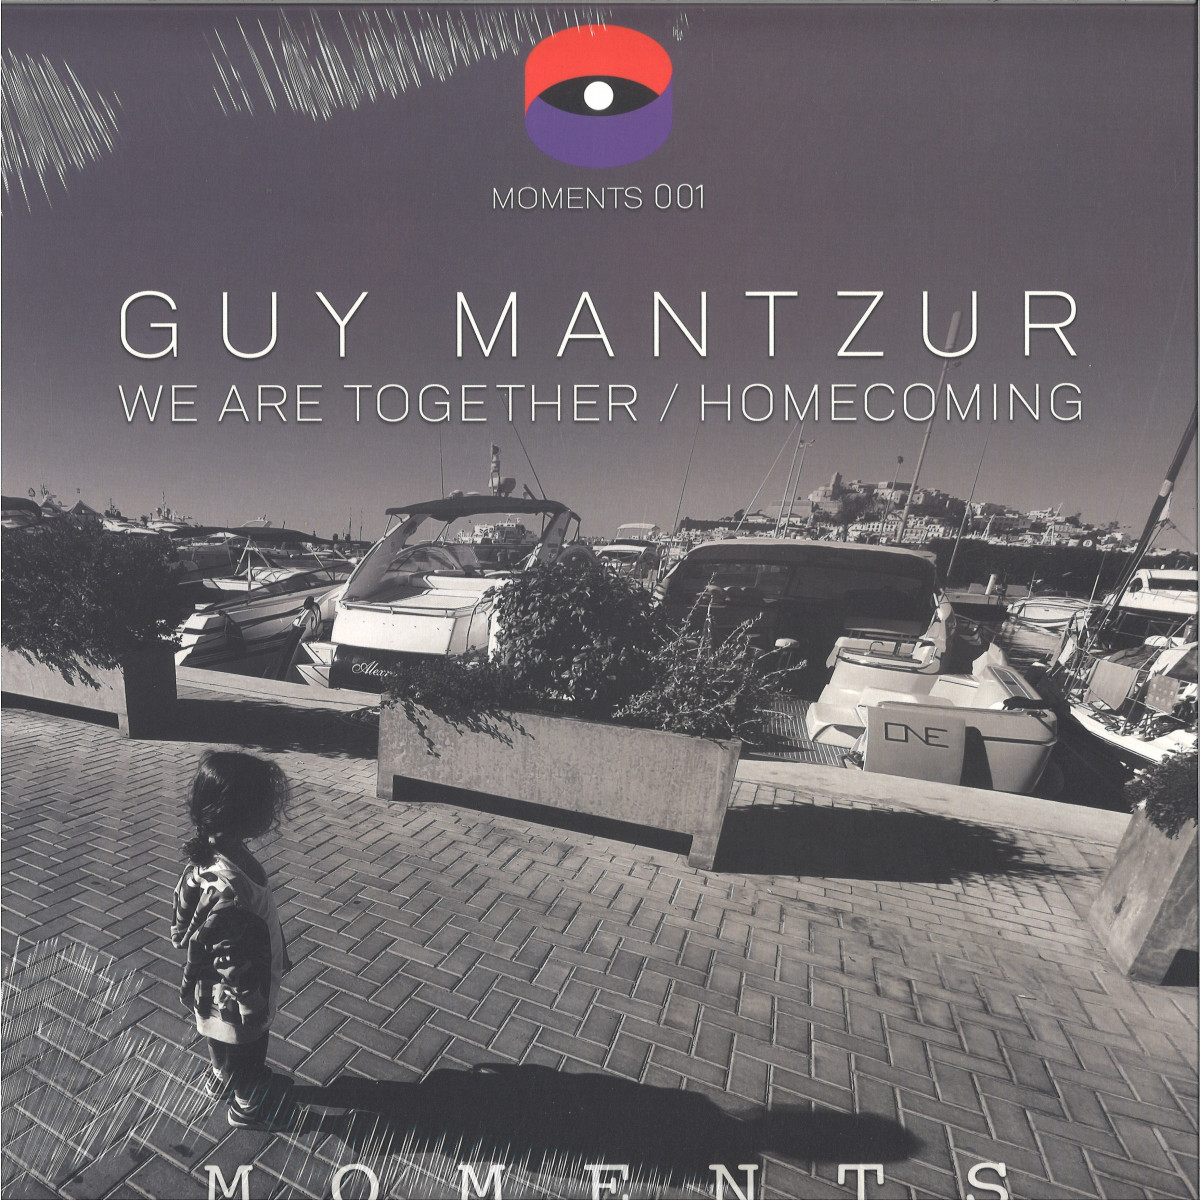 Guy Mantzur - We are Together / Homecoming / Moments MOMENTS001 - Vinyl